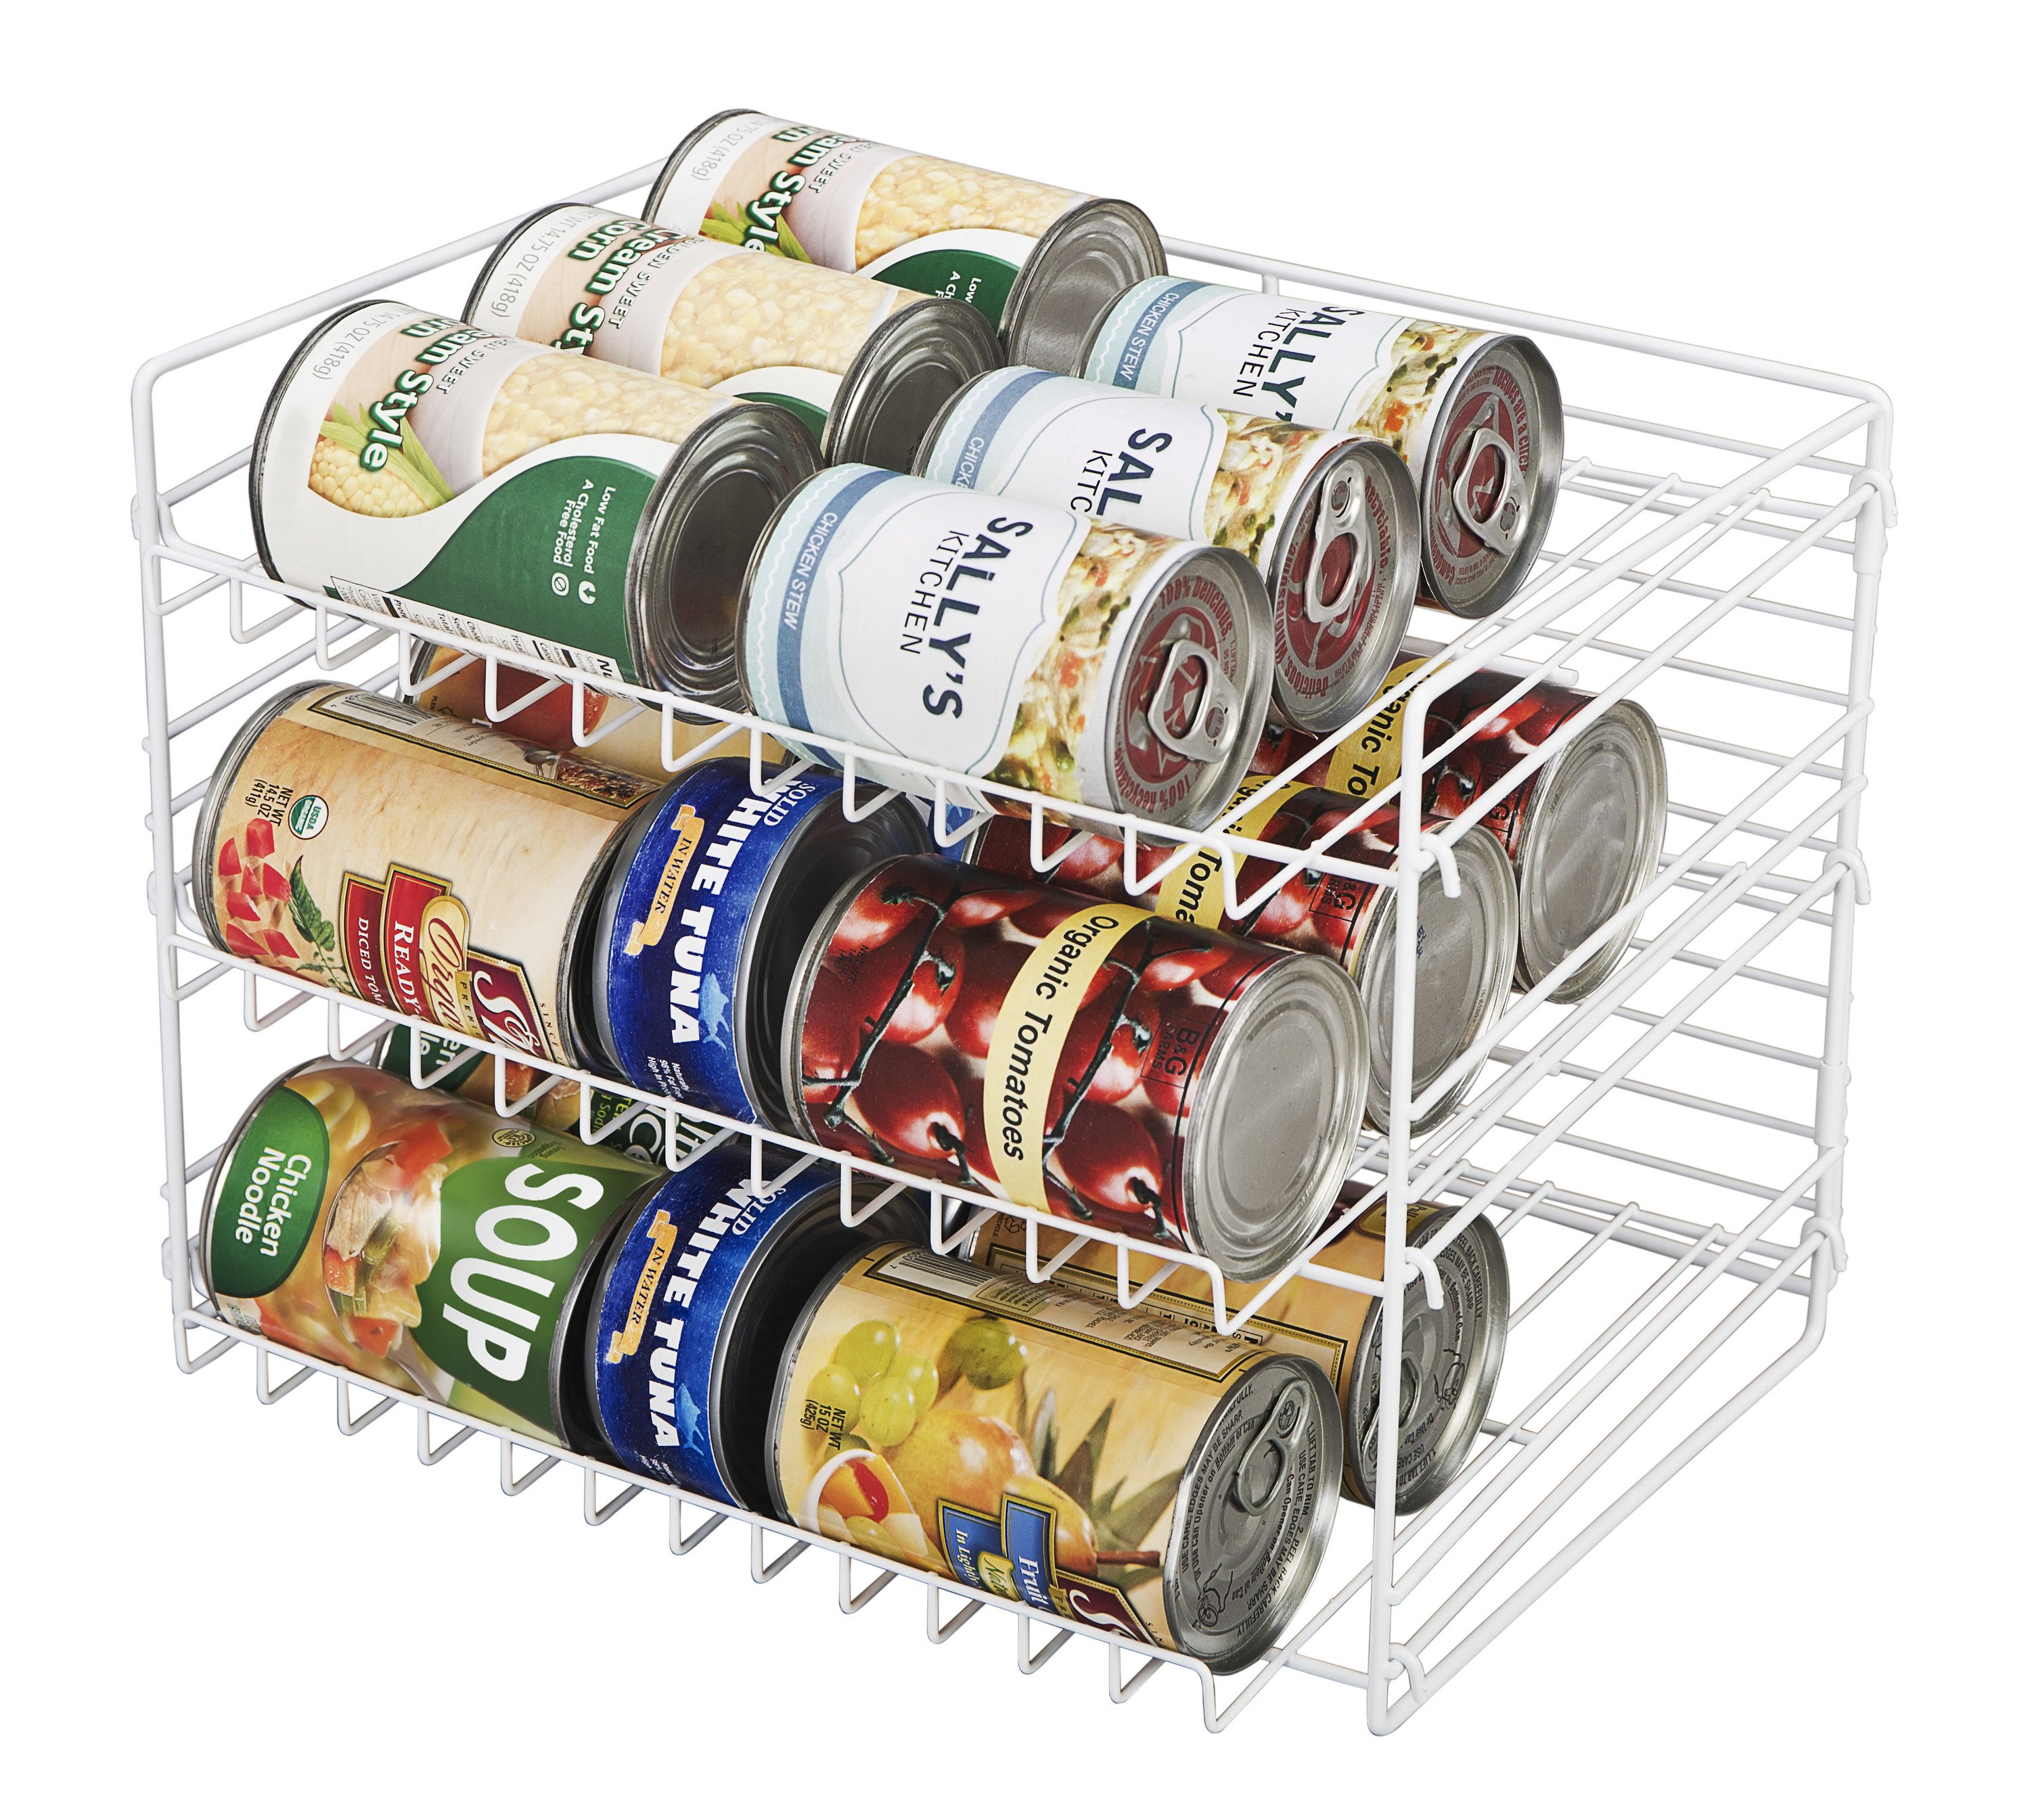 the can organizer holding cans